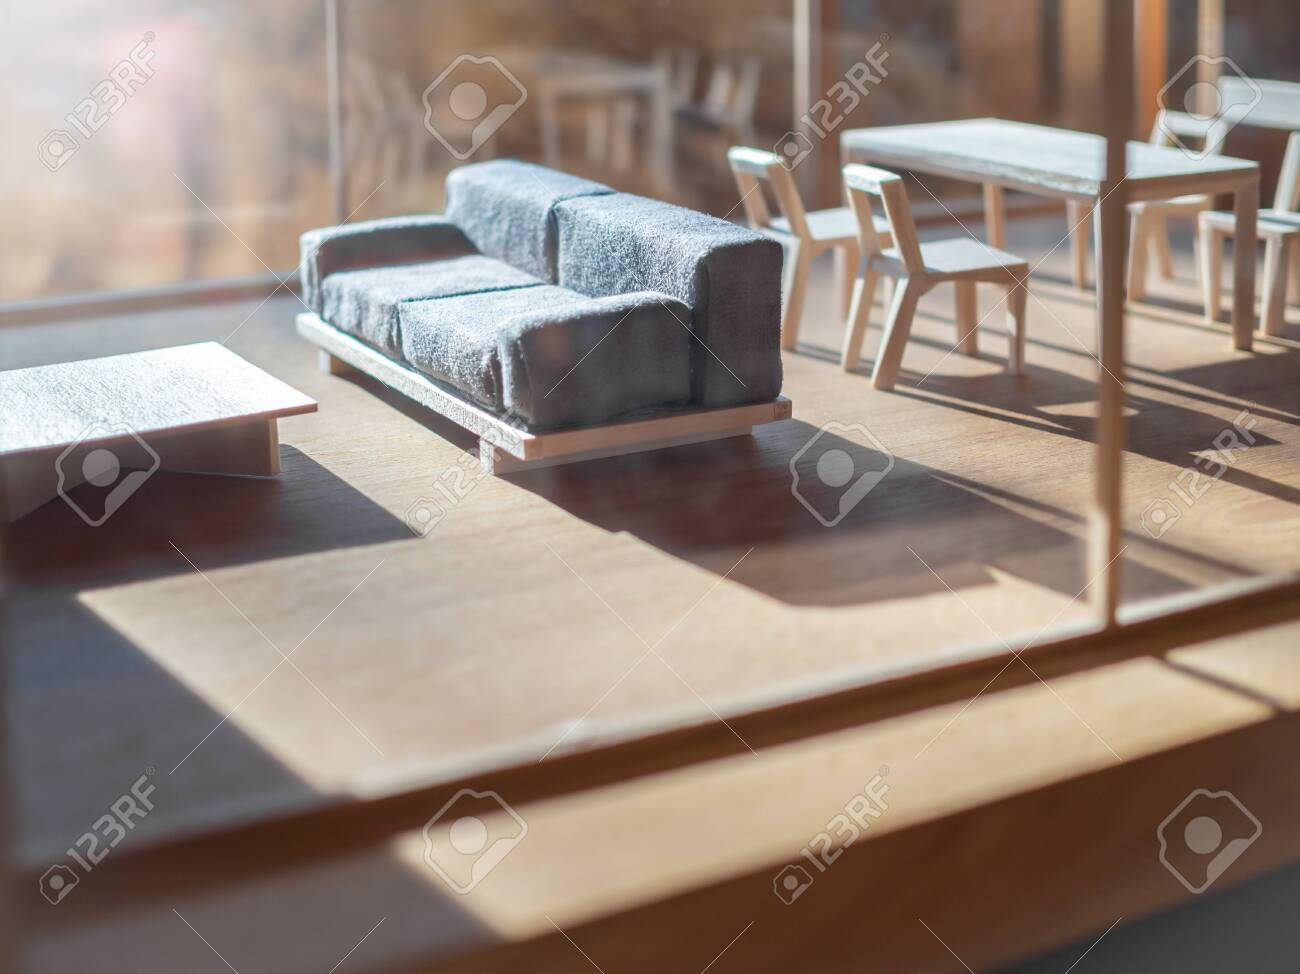 Sofa and wooden table set in living room balsa wood model. Miniature..